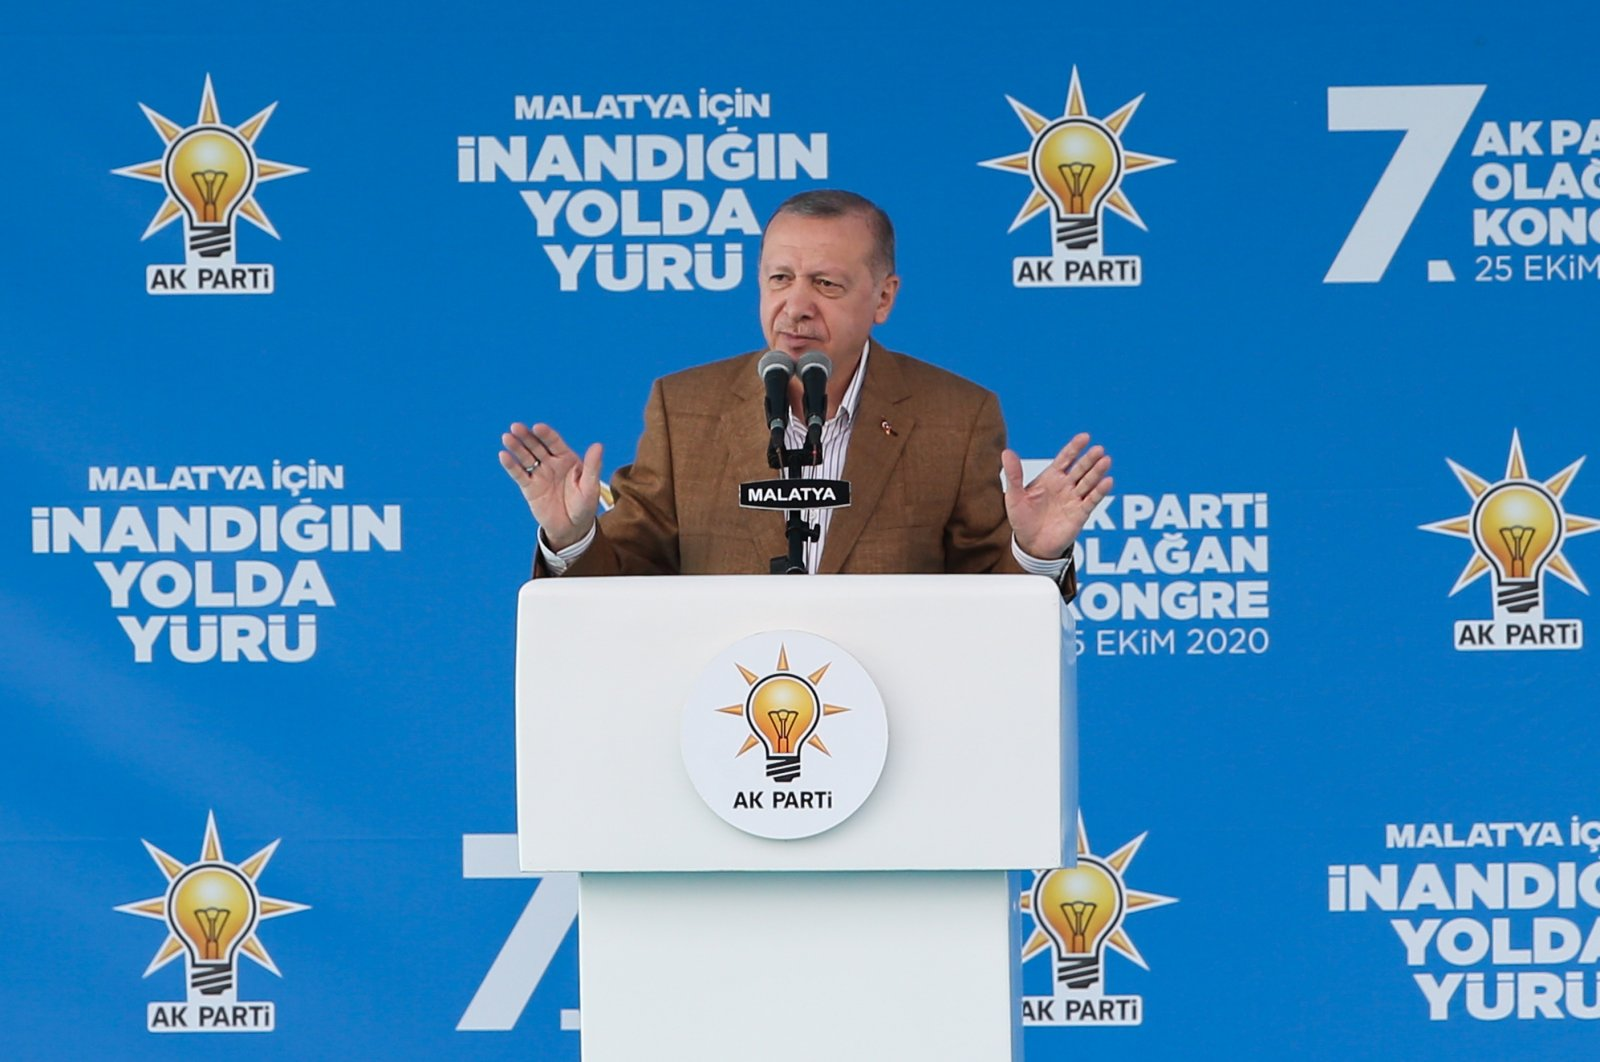 President Recep Tayyip Erdoğan speaks during a local congress of his ruling Justice and Development Party (AK Party) in eastern Turkey's Malatya. Oct. 25, 2020. (AA Photo)